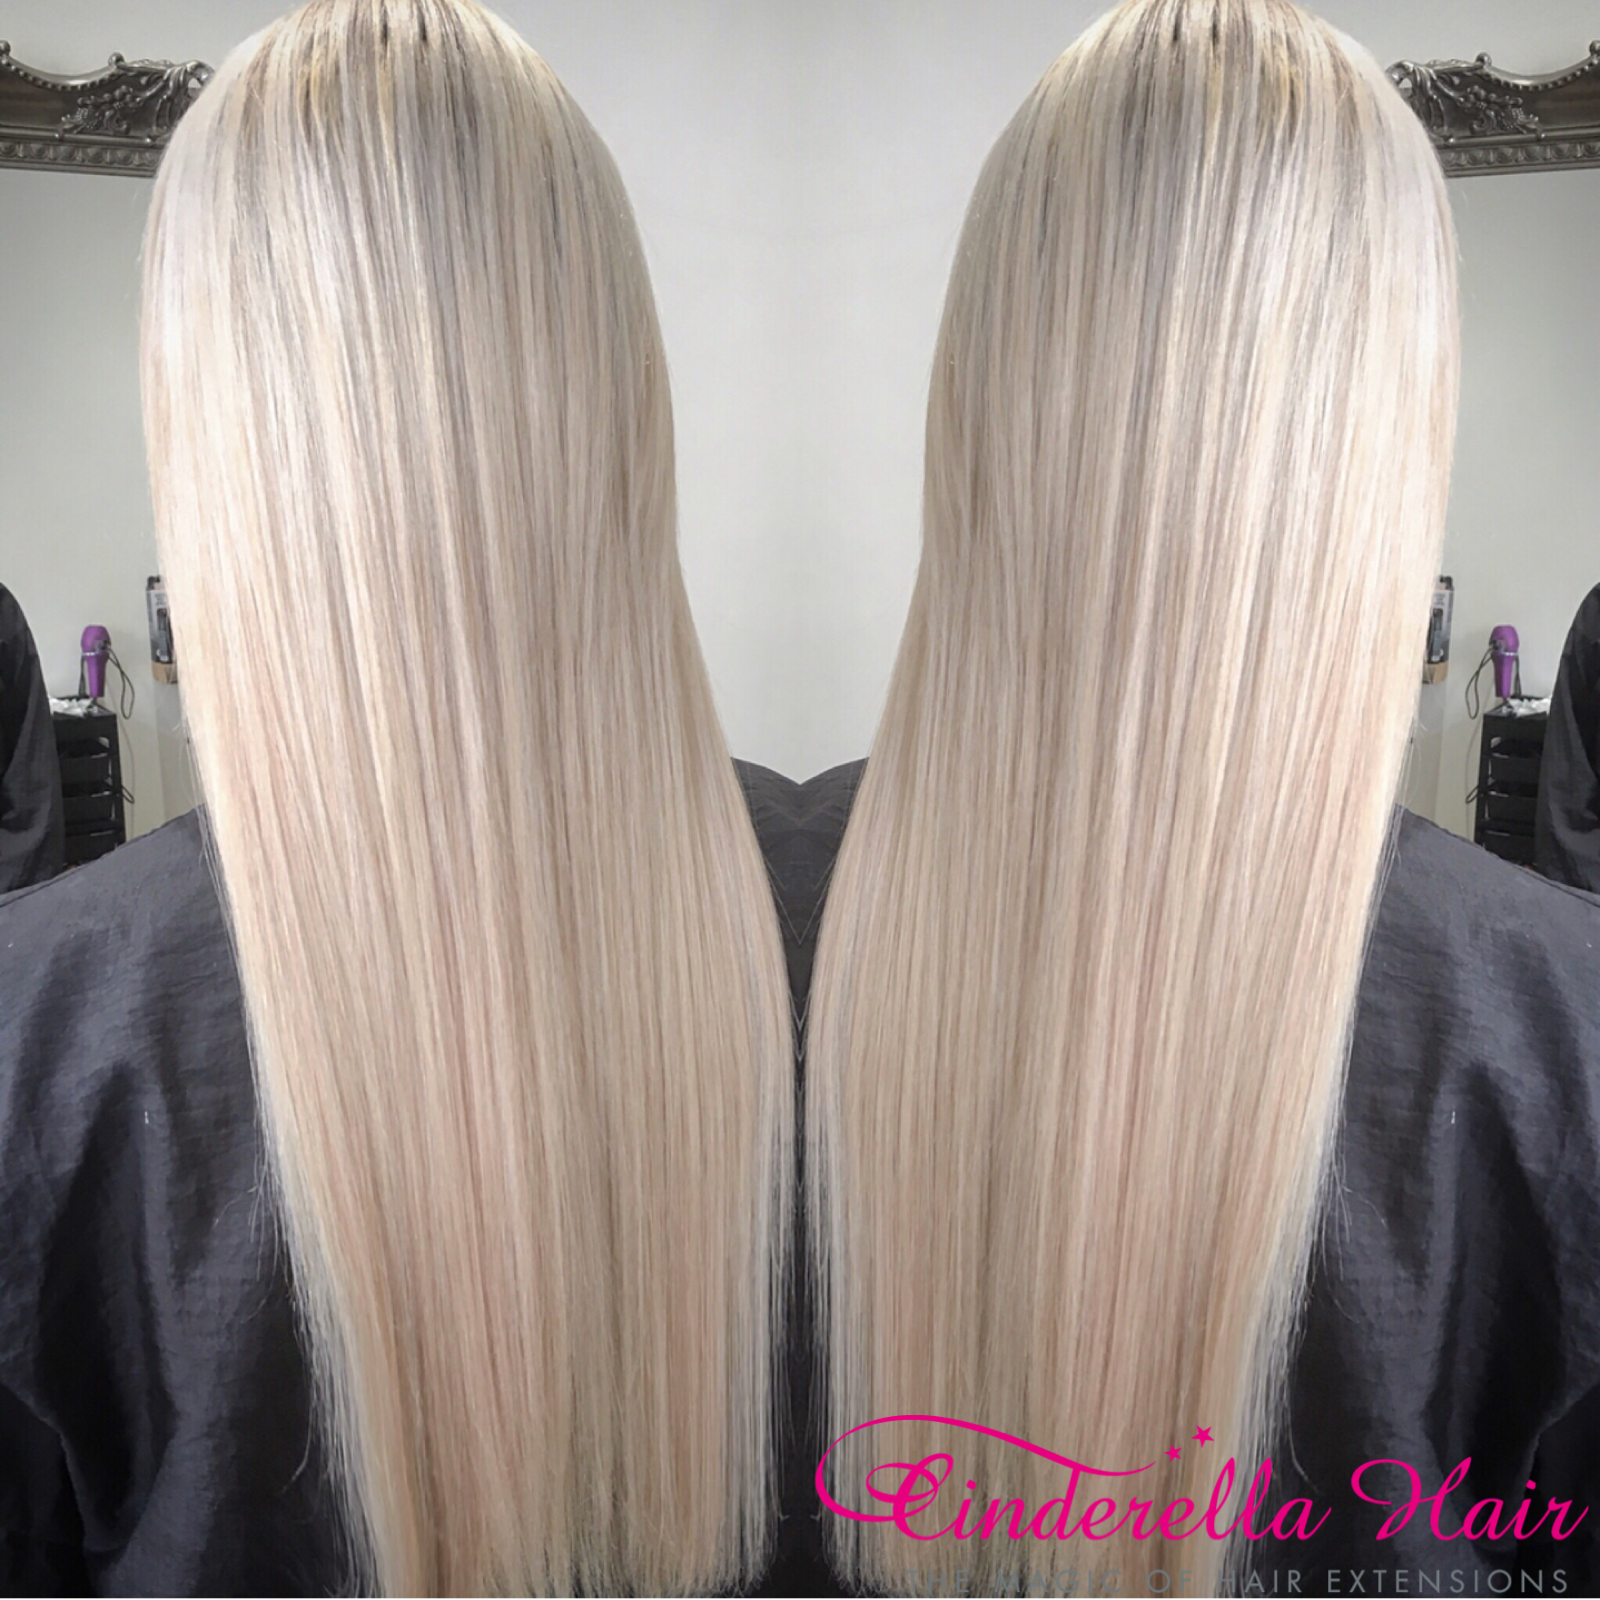 Cinderella Hair Extensions Before After 12 Cinderella Hair